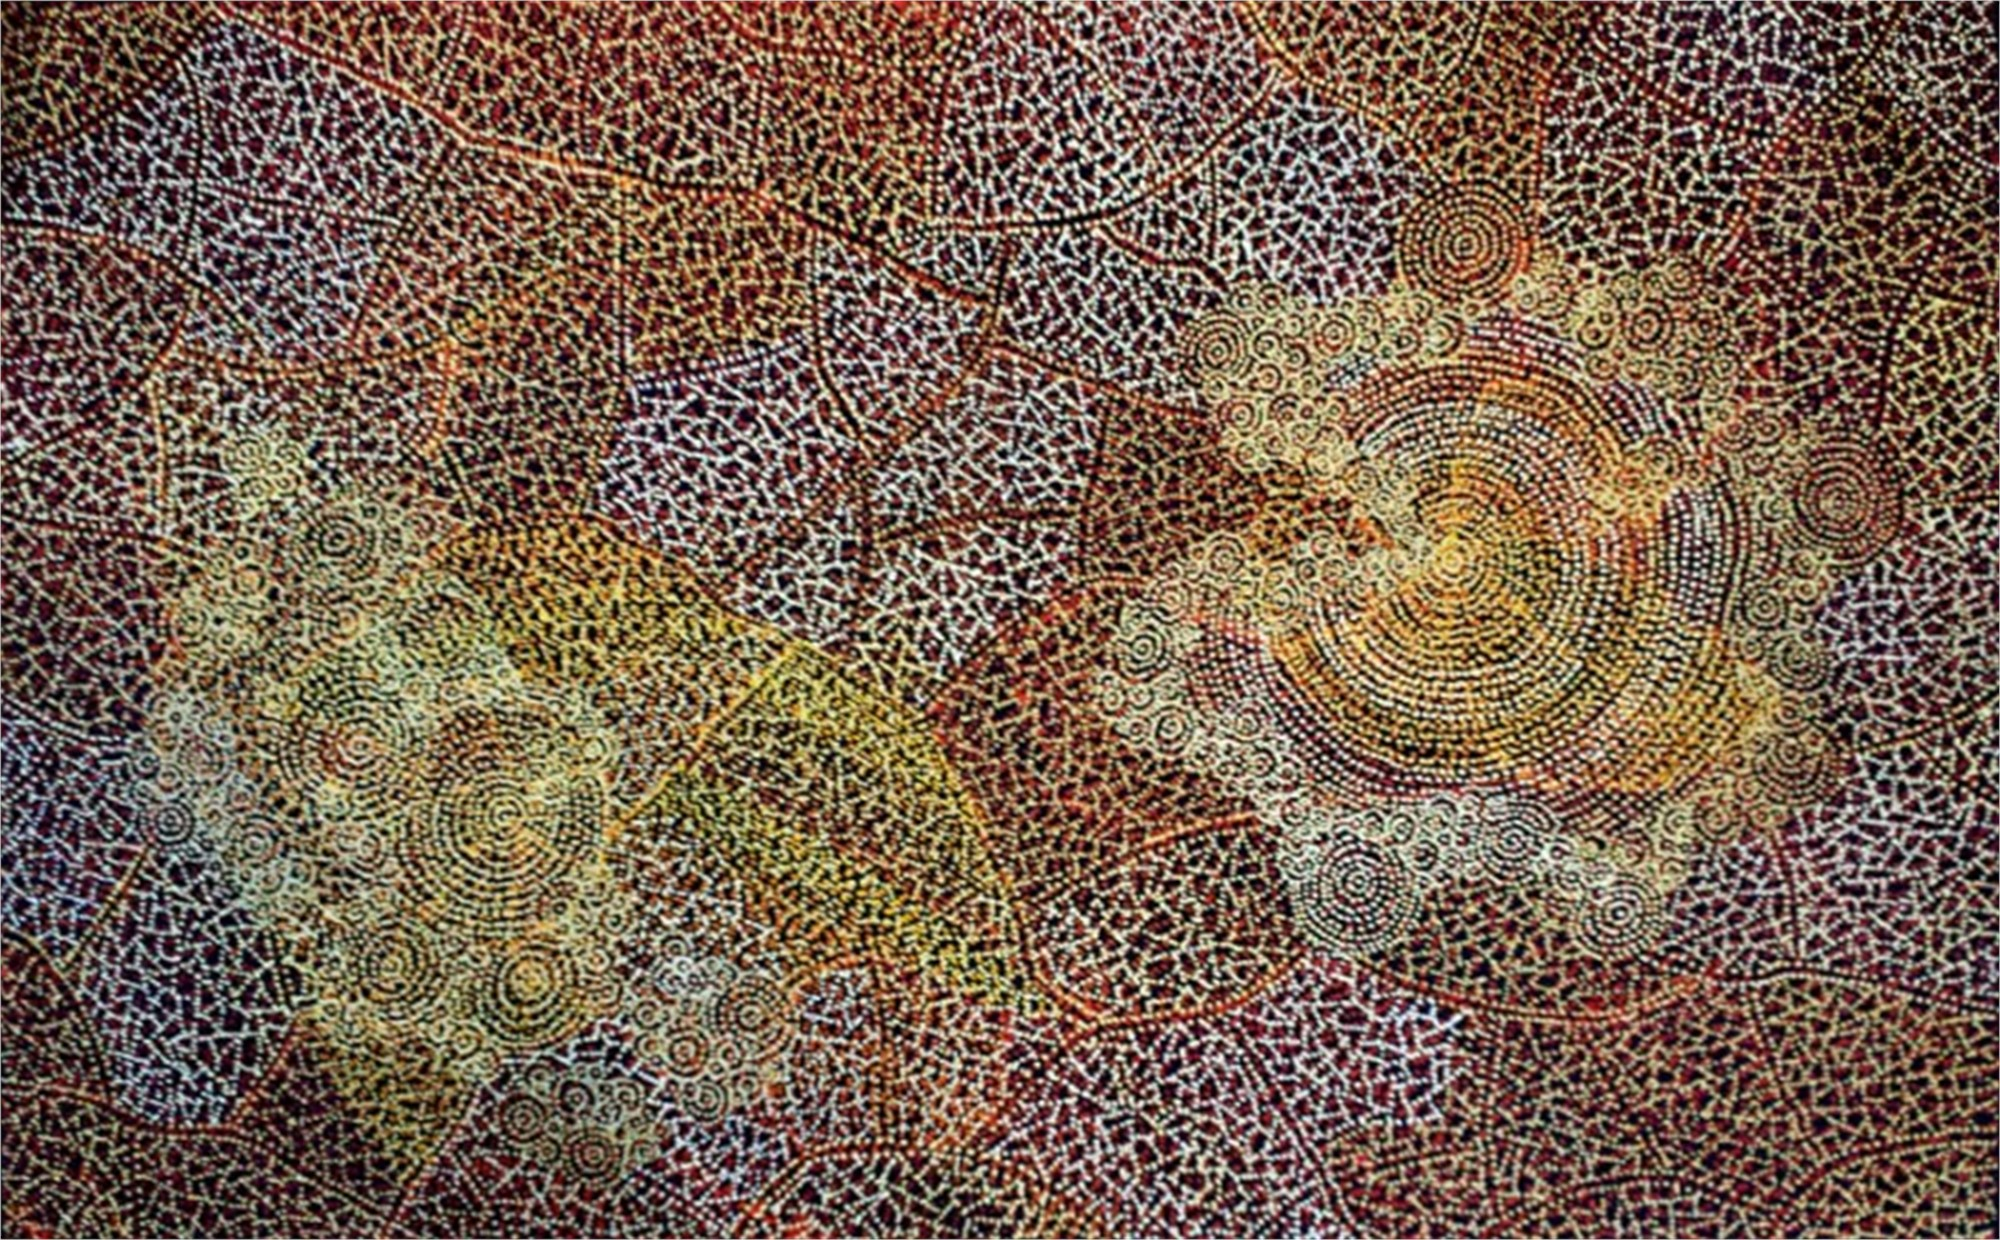 Ancestors II by Australian Aboriginal Artists